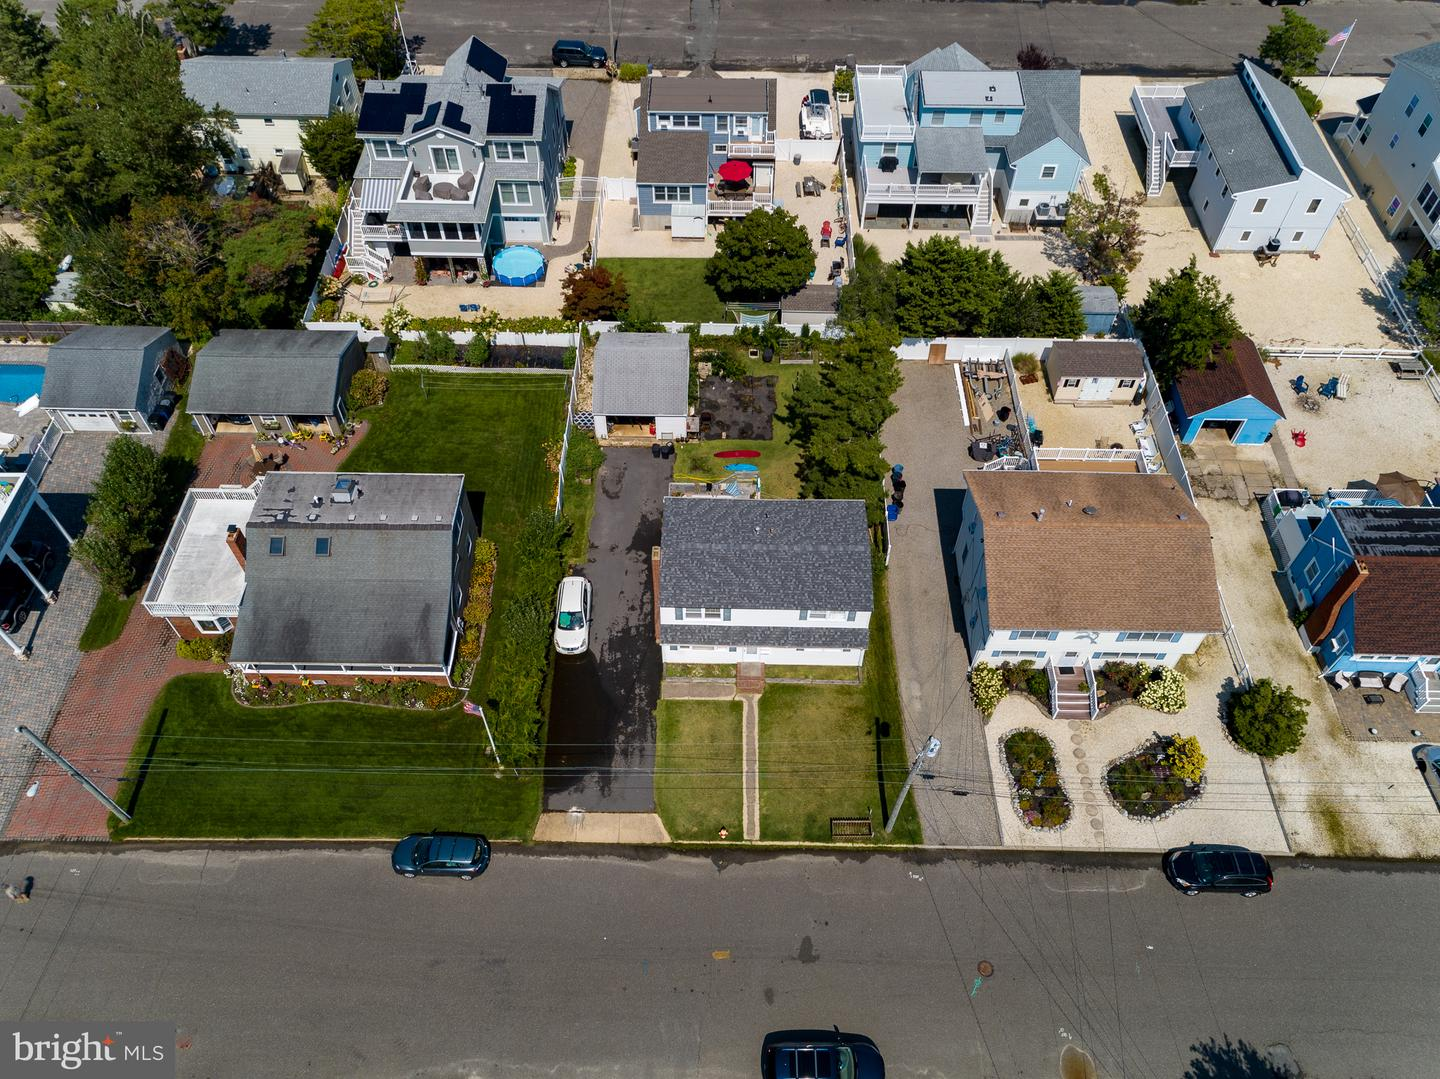 321 W 16TH ST - Picture 8